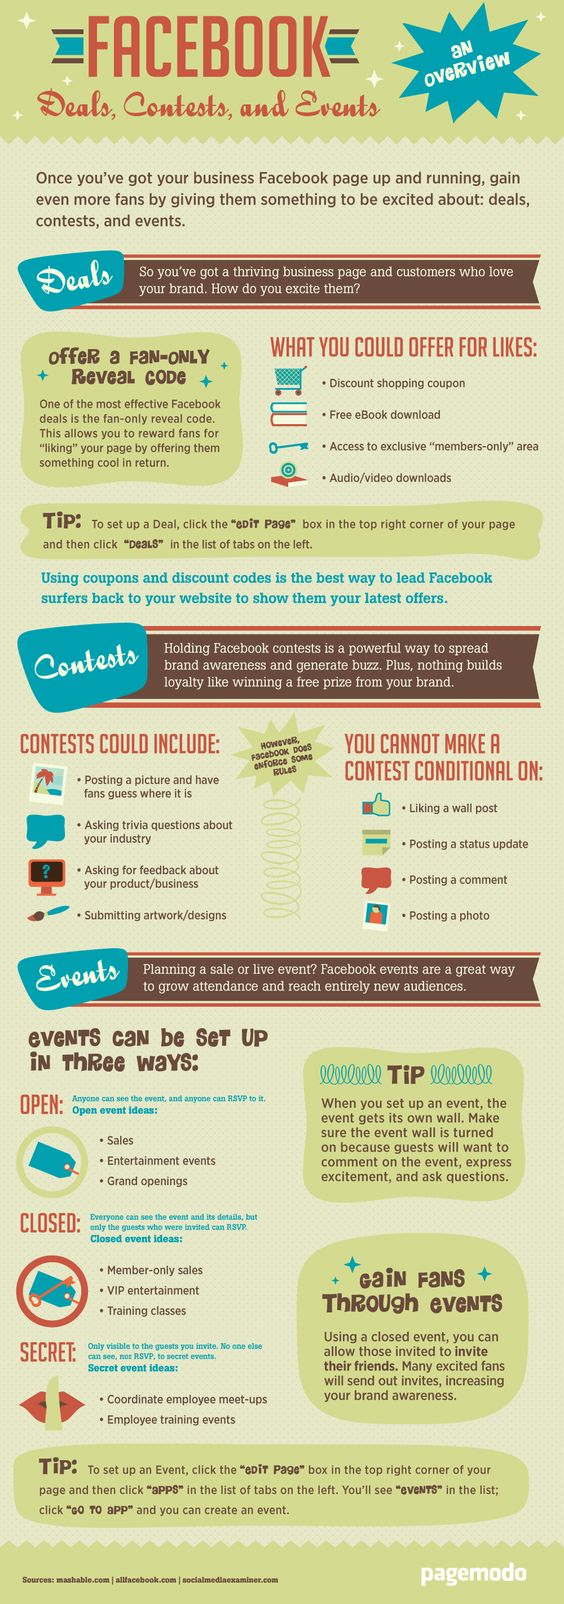 Facebook Deals Contests and Events - an overview [infographic]